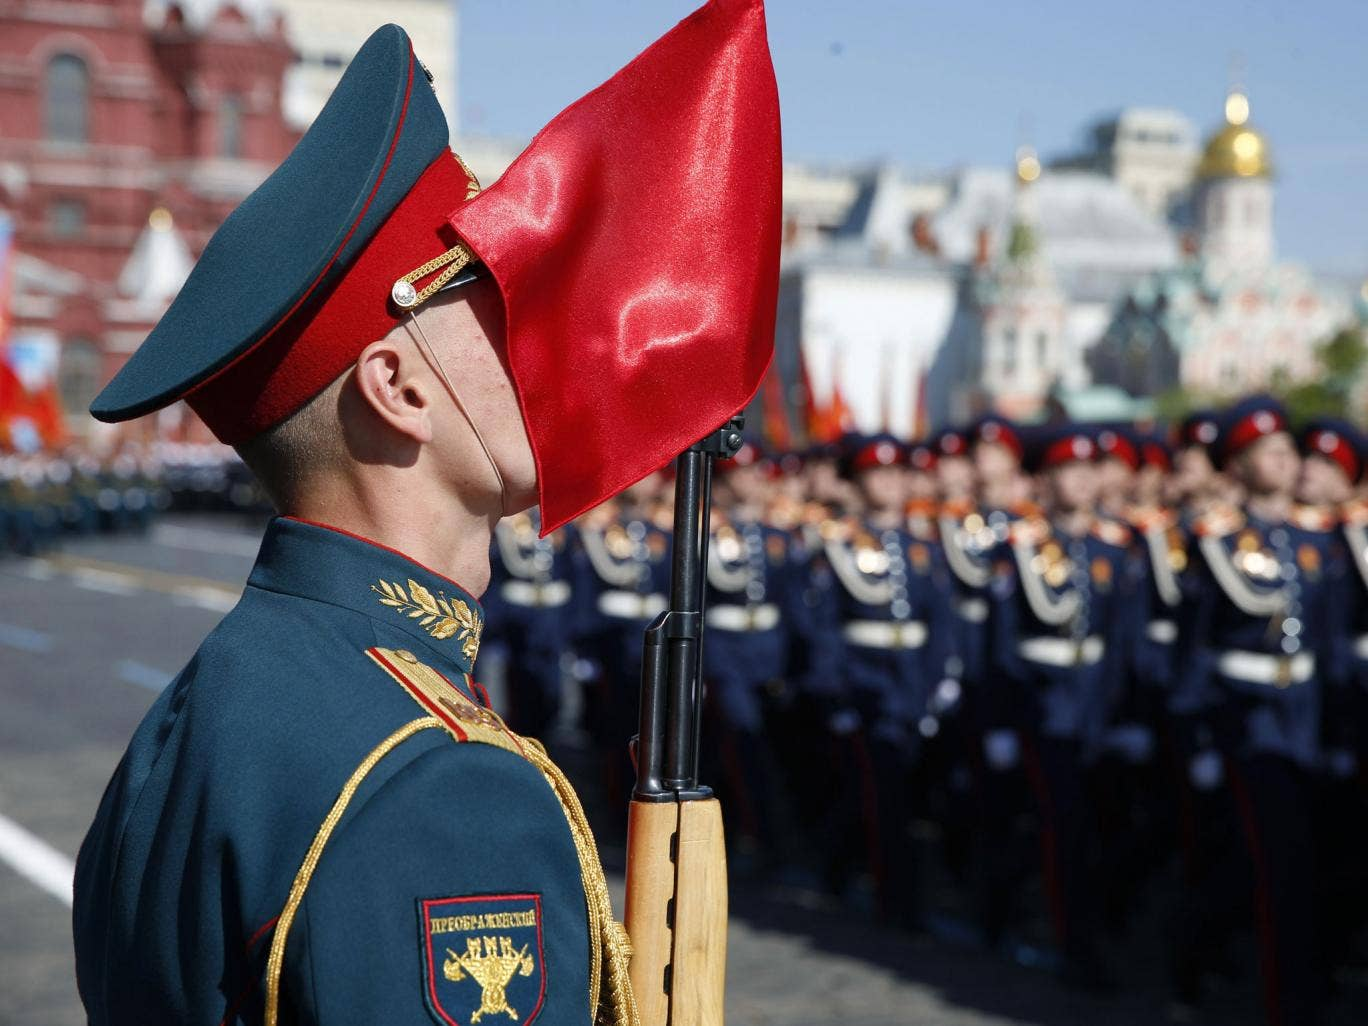 Russian troops march during a Victory Day parade, which commemorates the 1945 defeat of Nazi Germany, at Red Square in Moscow